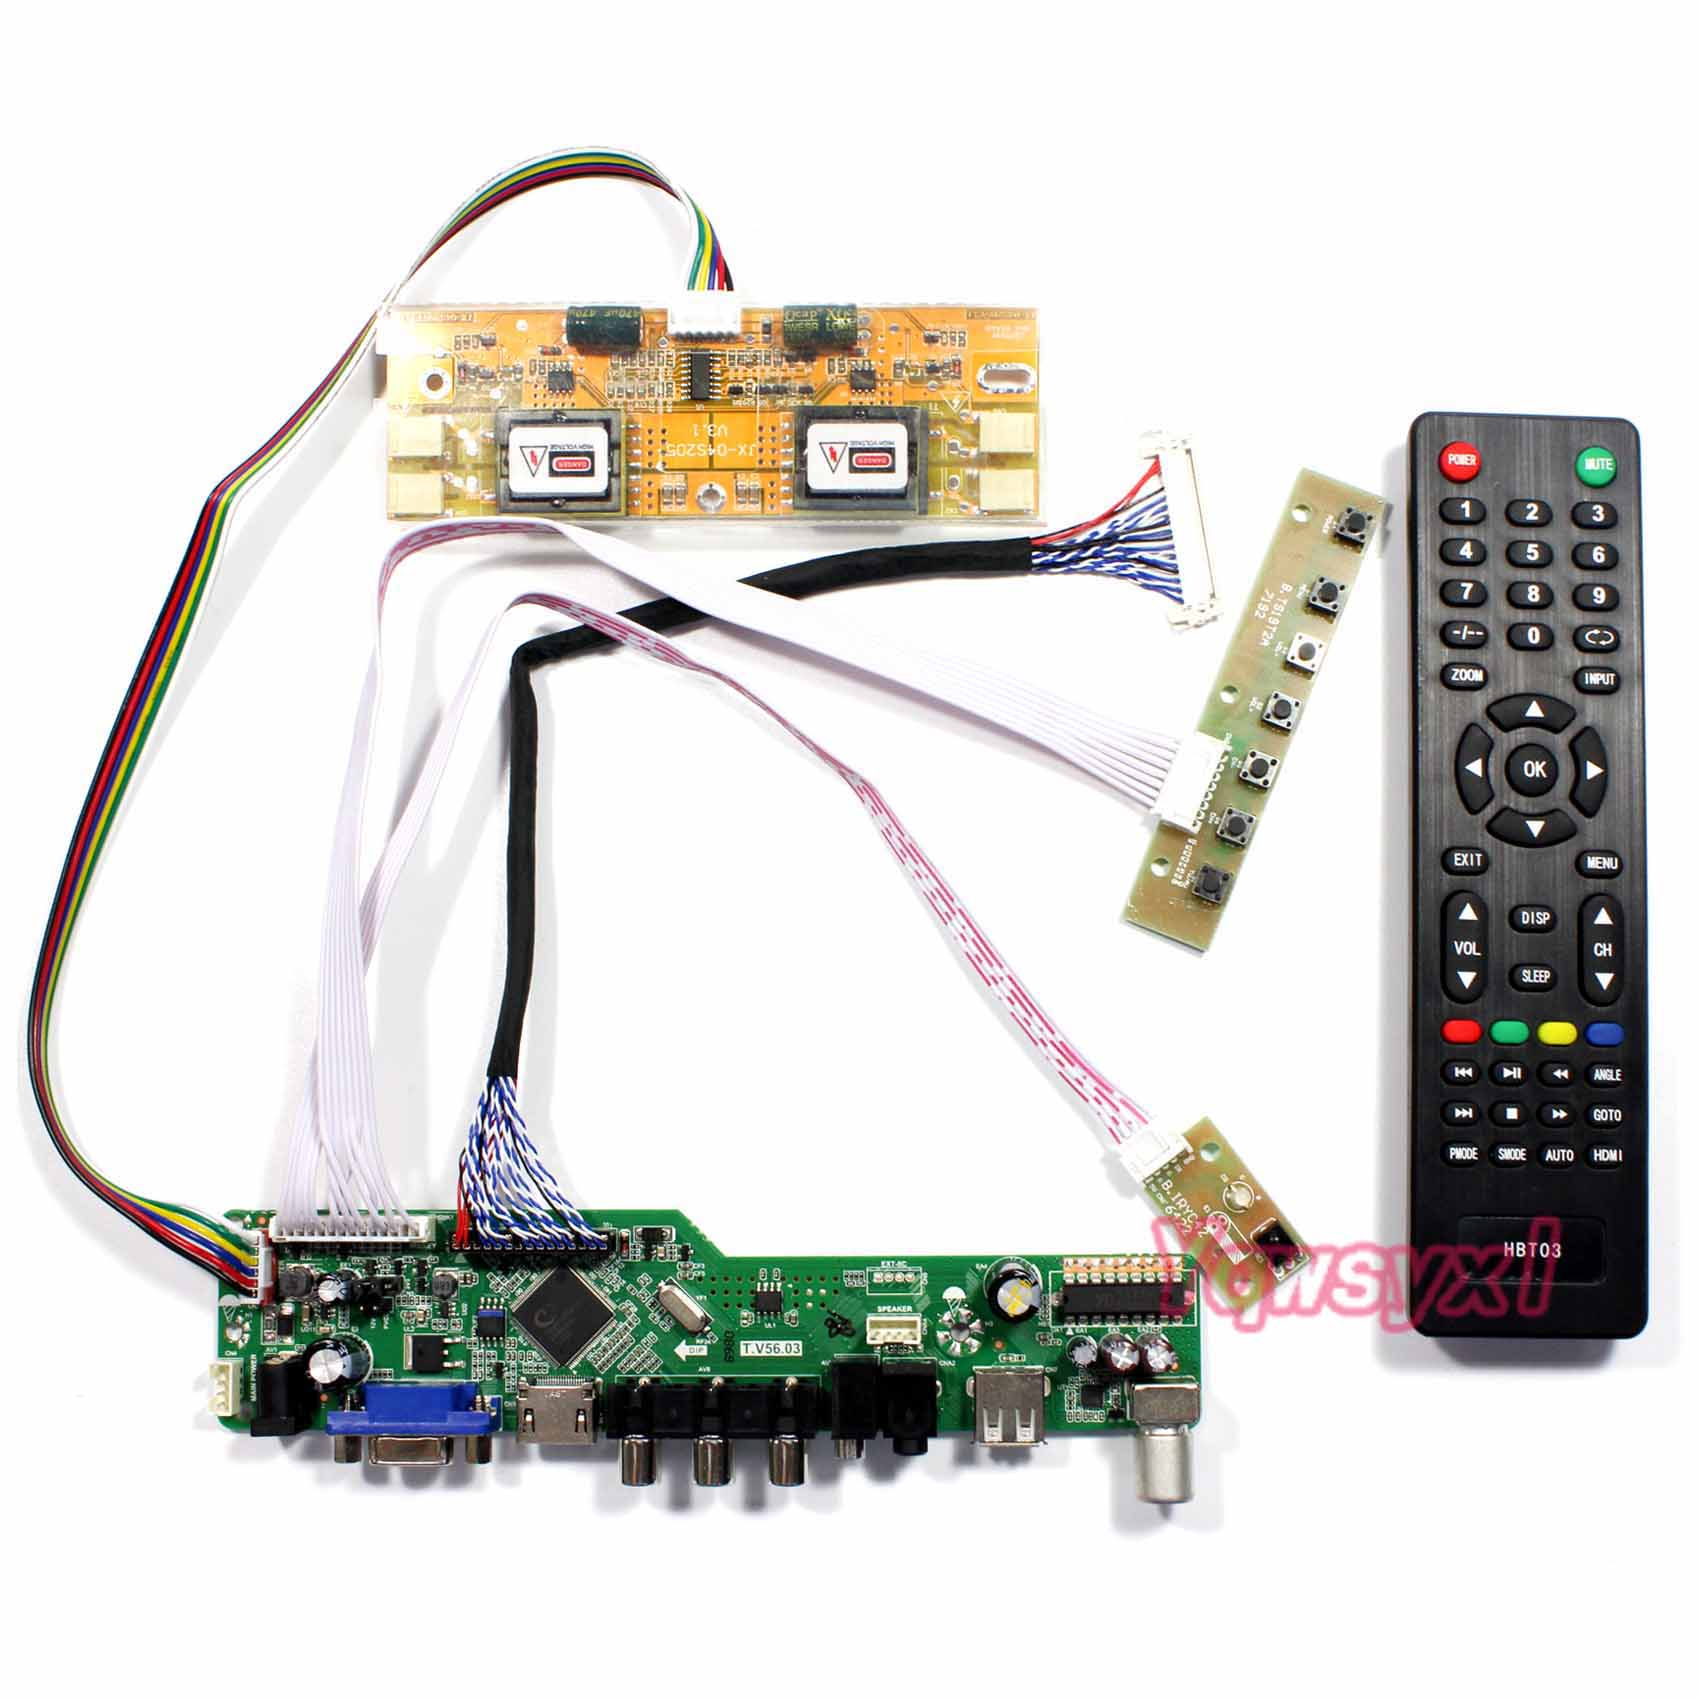 Yqwsyxl Kit For M220Z1-L03  M220Z1-L05  TV+HDMI+VGA+AV+USB LCD LED Screen Controller Driver Board